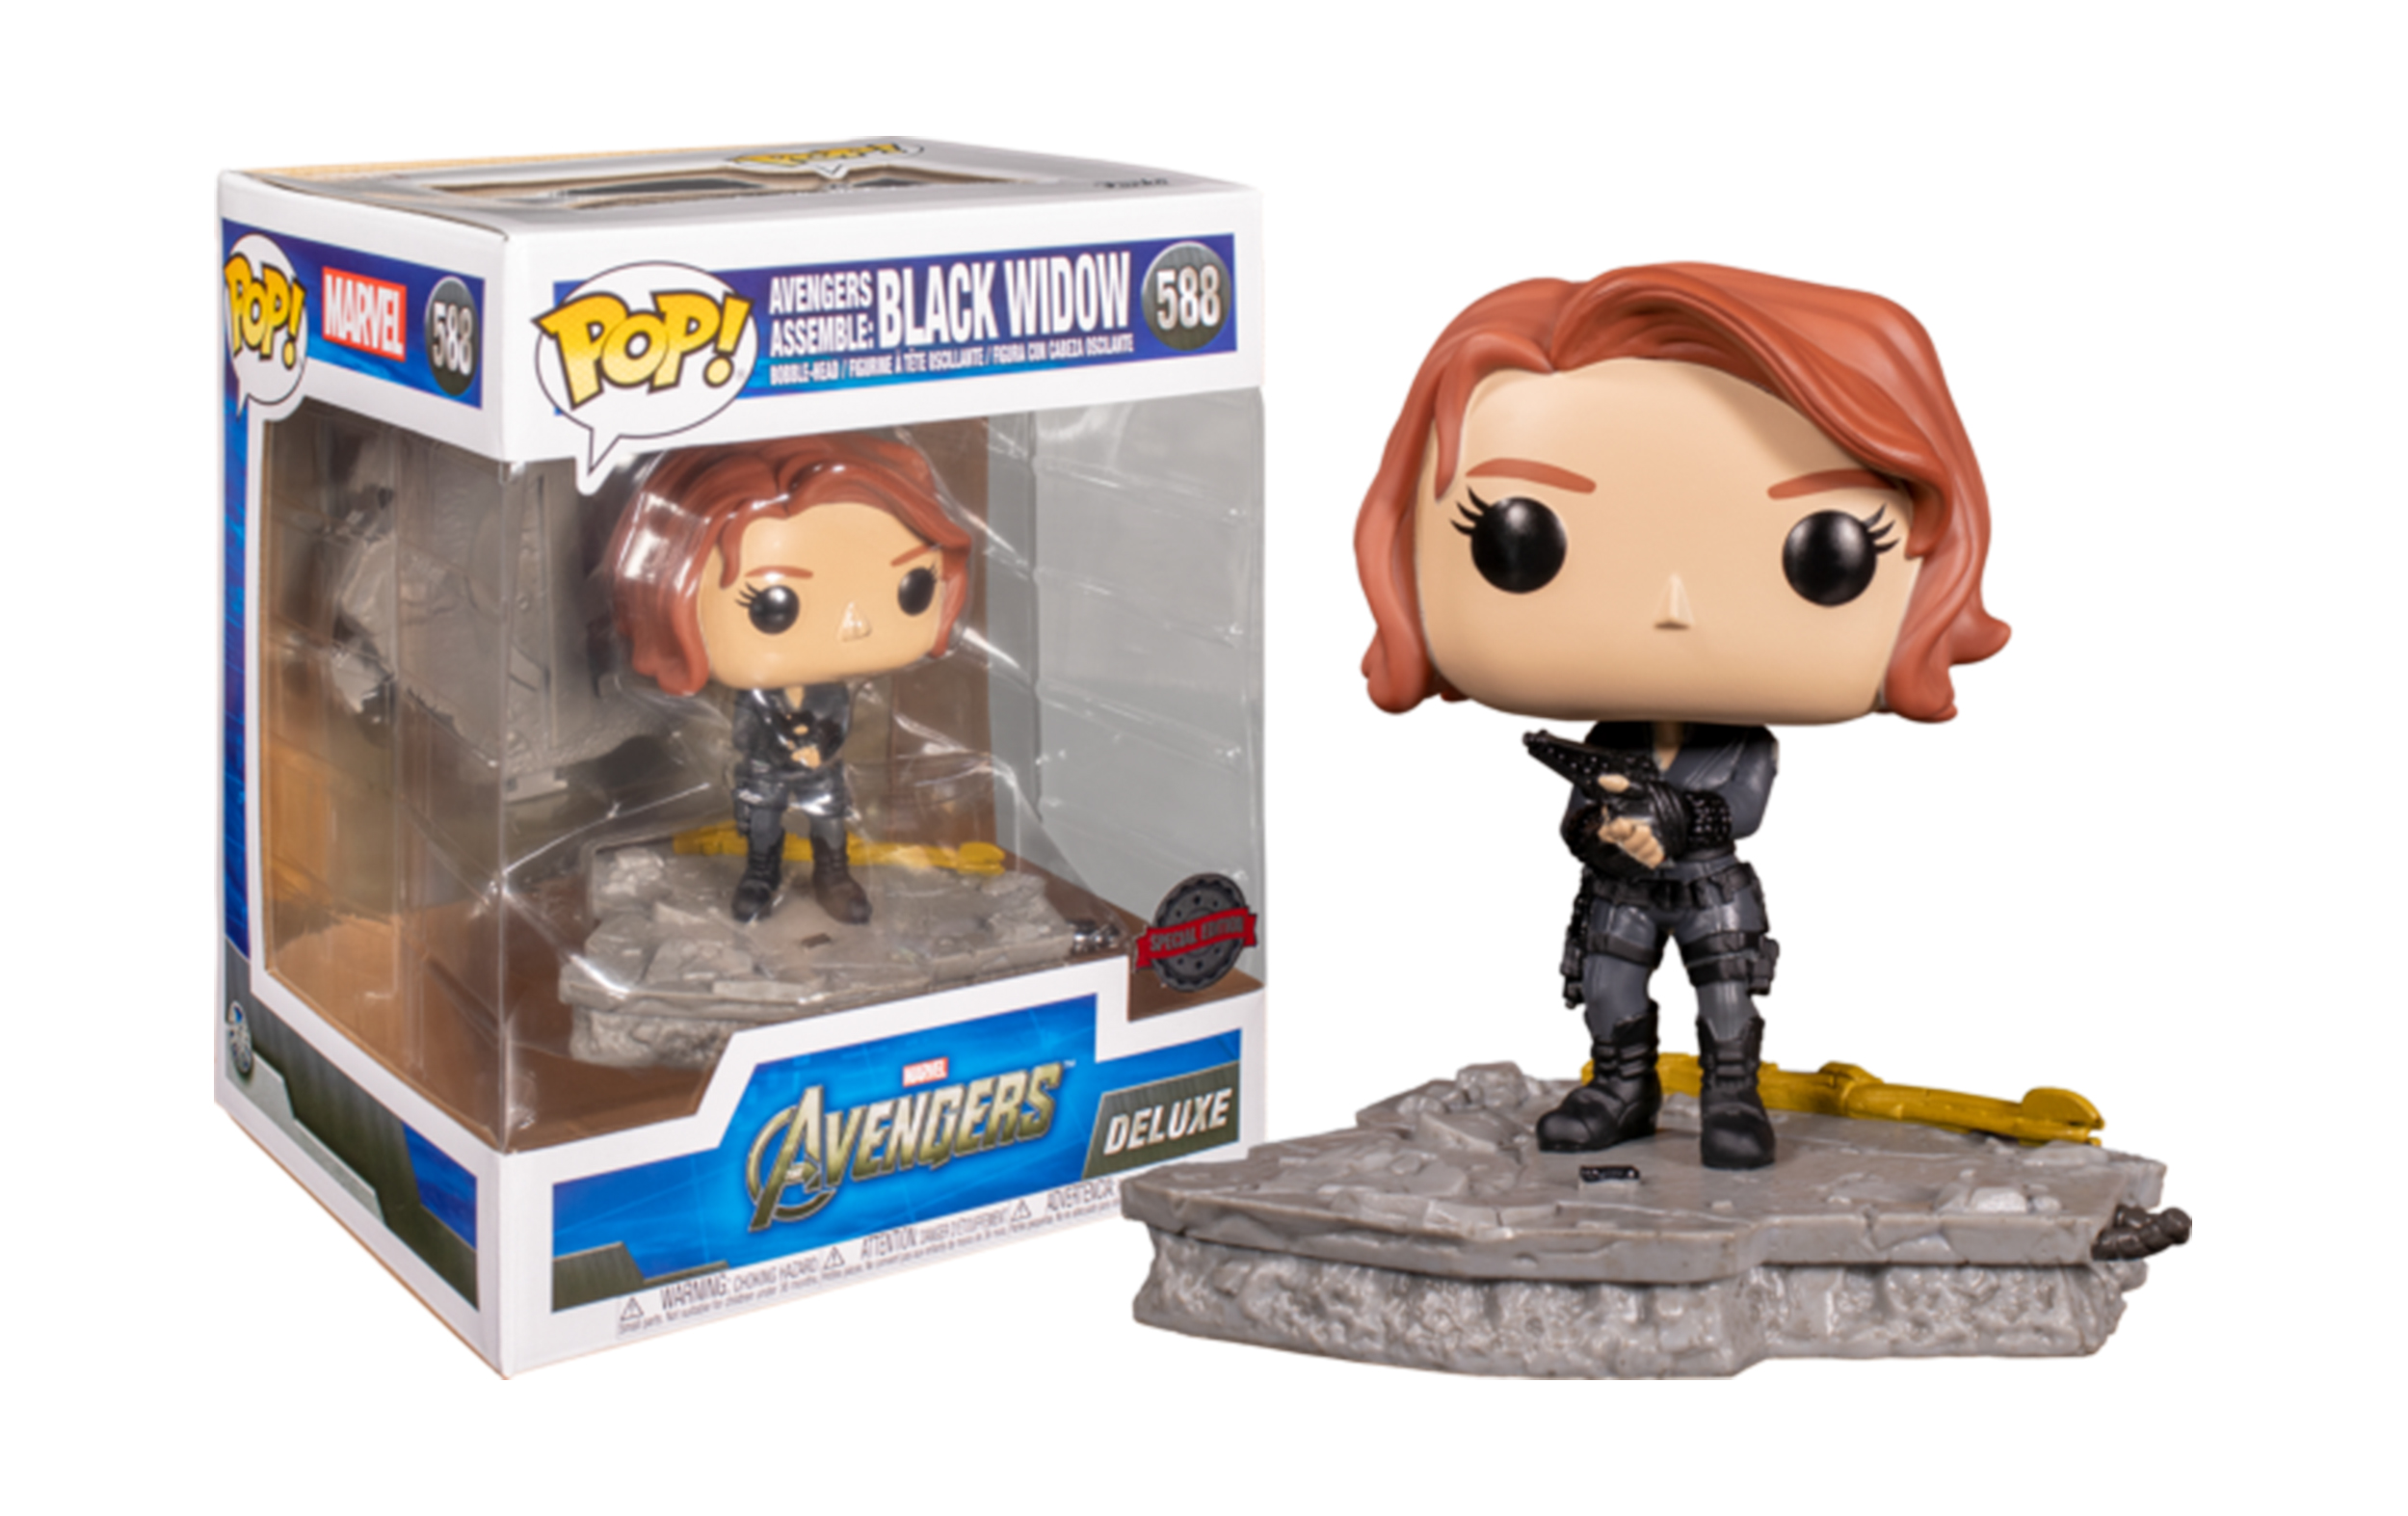 Marvel Avengers Assemble: Black Widow 588 Funko POP Vinyl Figure